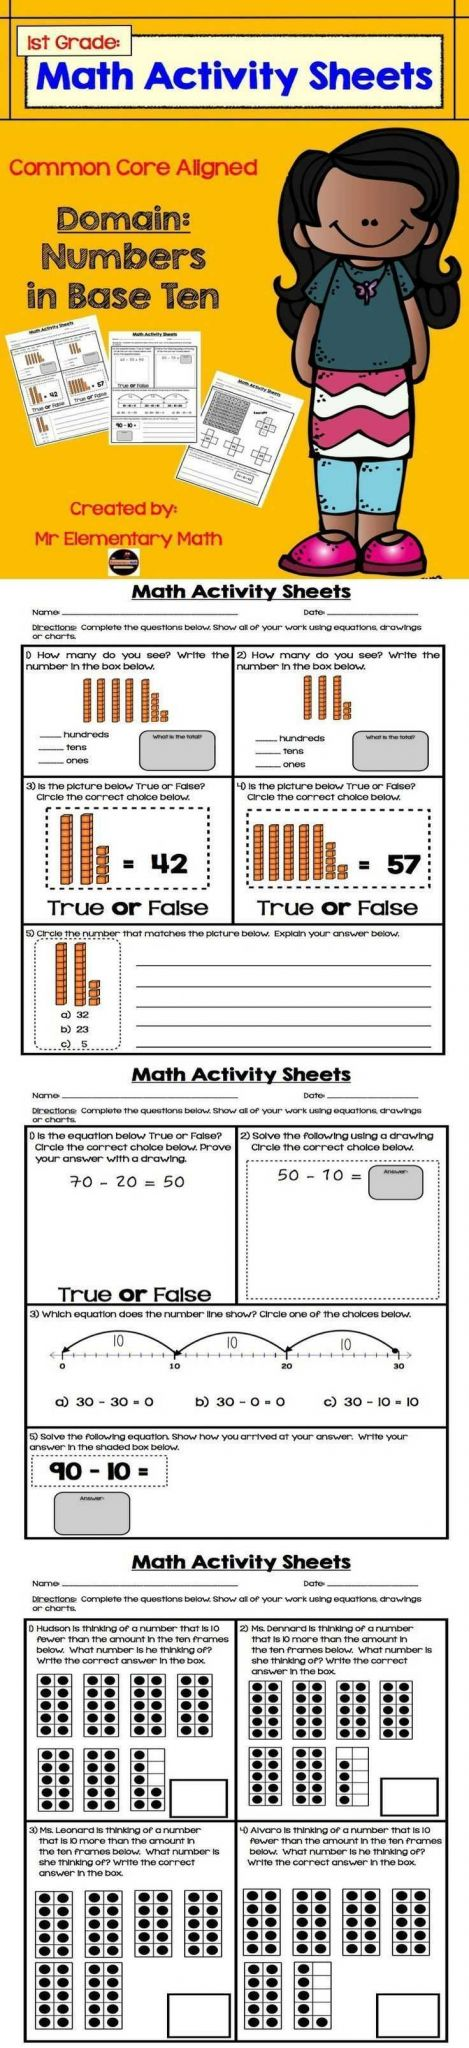 Review and Reinforce Worksheet Answers together with 205 Best Addition and Subtraction Images On Pinterest